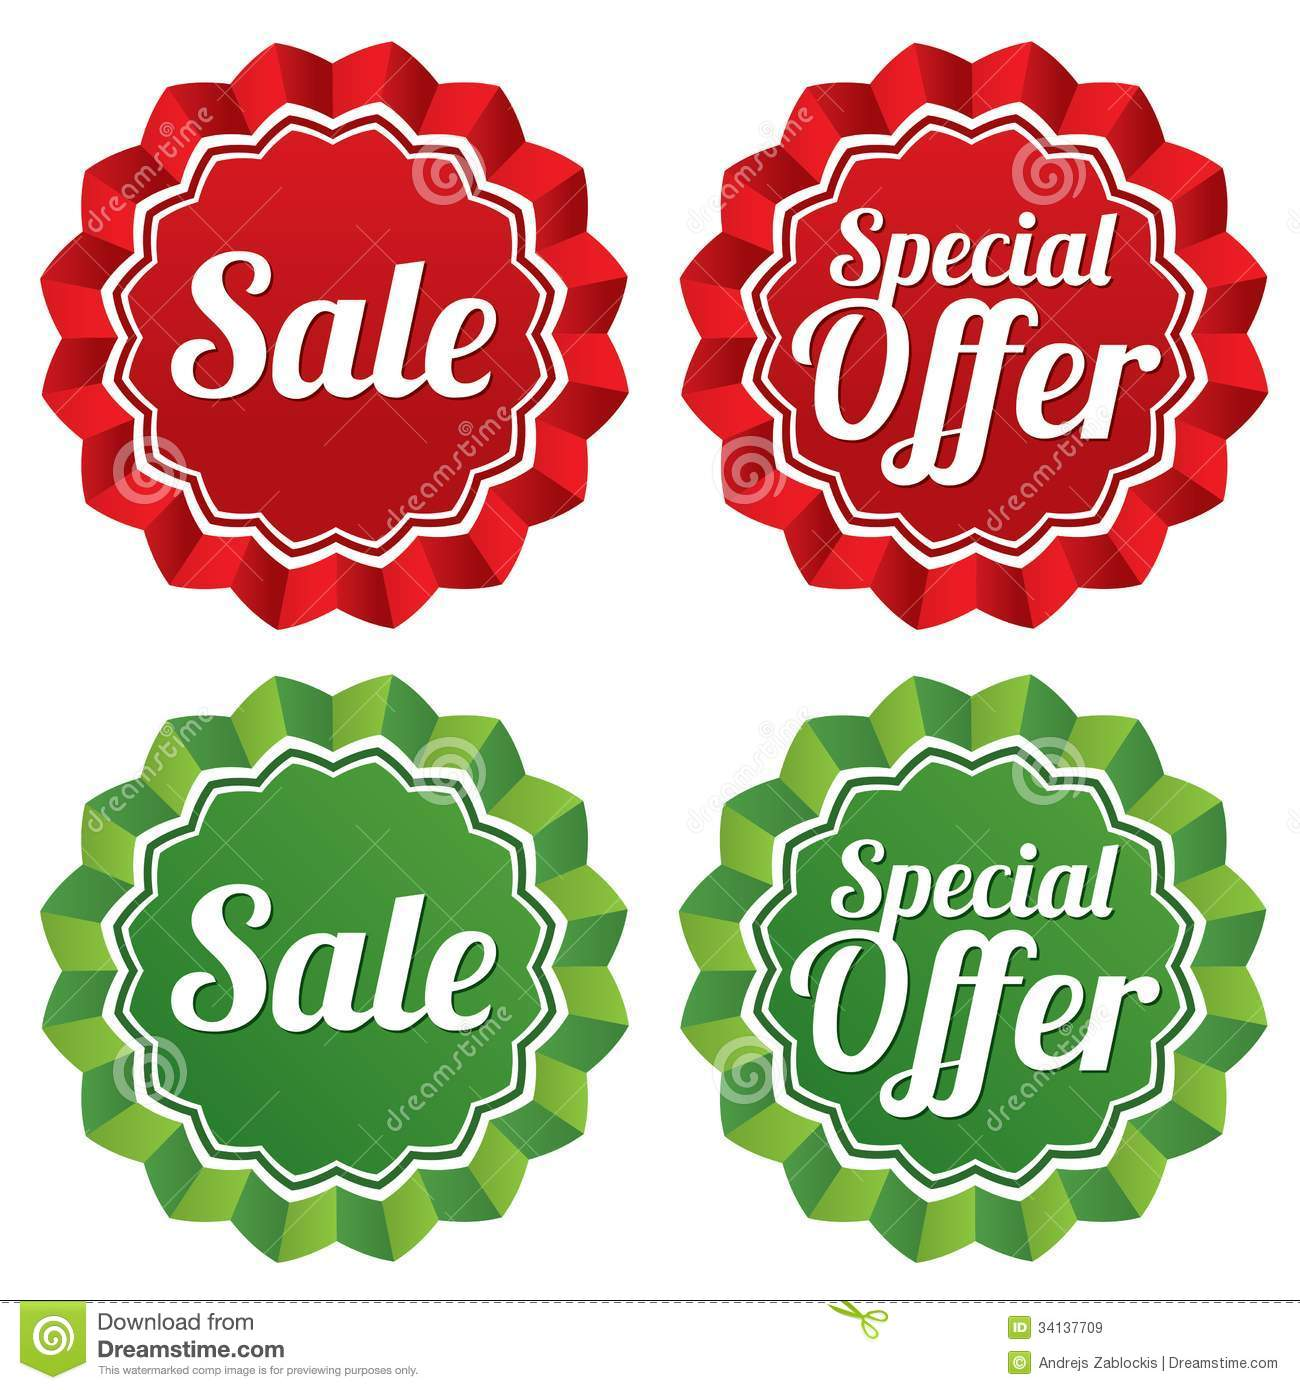 Special Offer Price Tags Templates Set. Royalty Free Stock Images ...